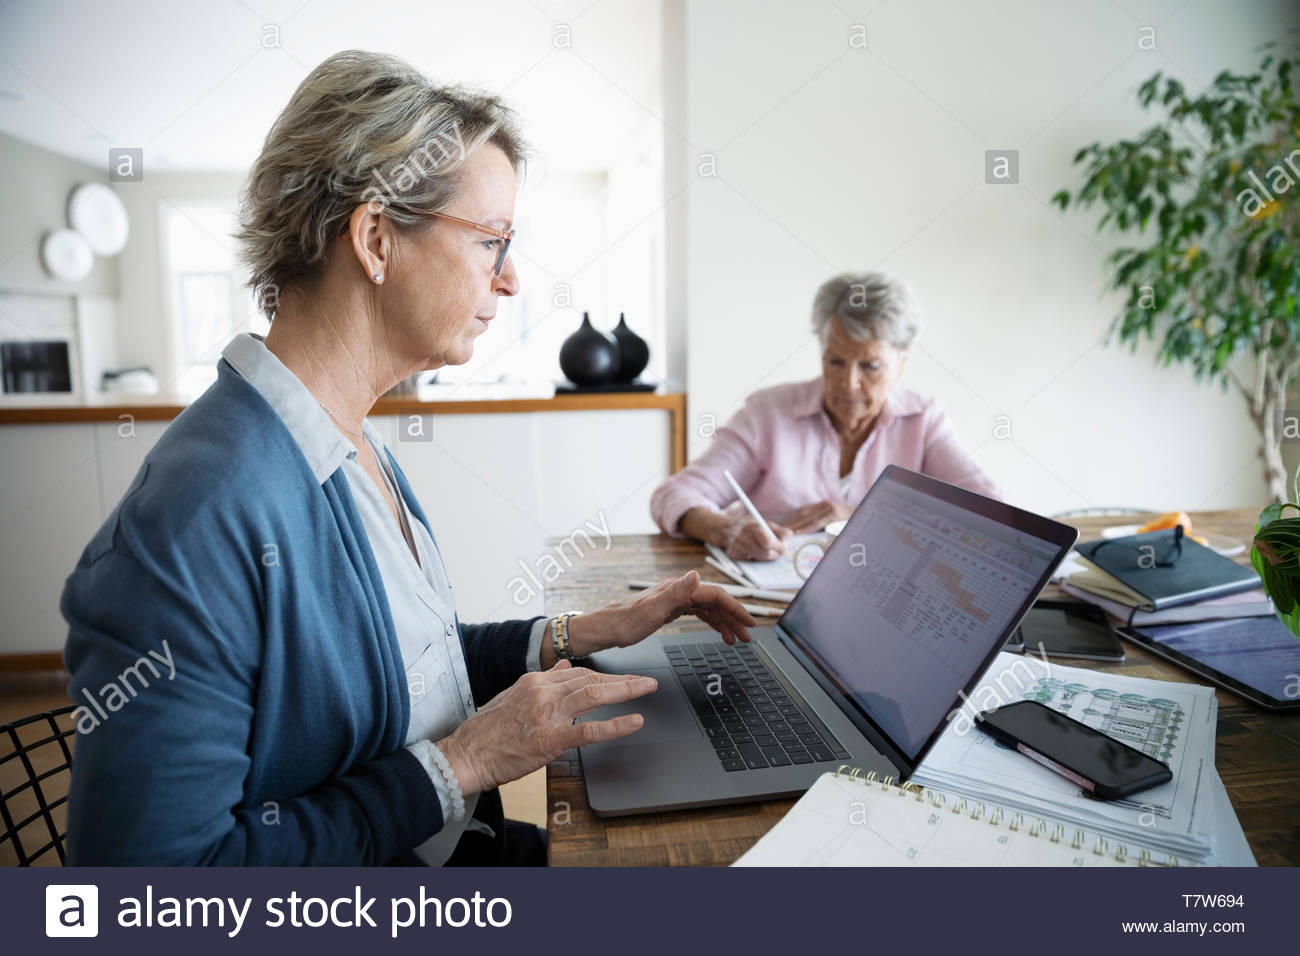 Woman paying bills online at laptop while senior mother colors in background - Stock Image